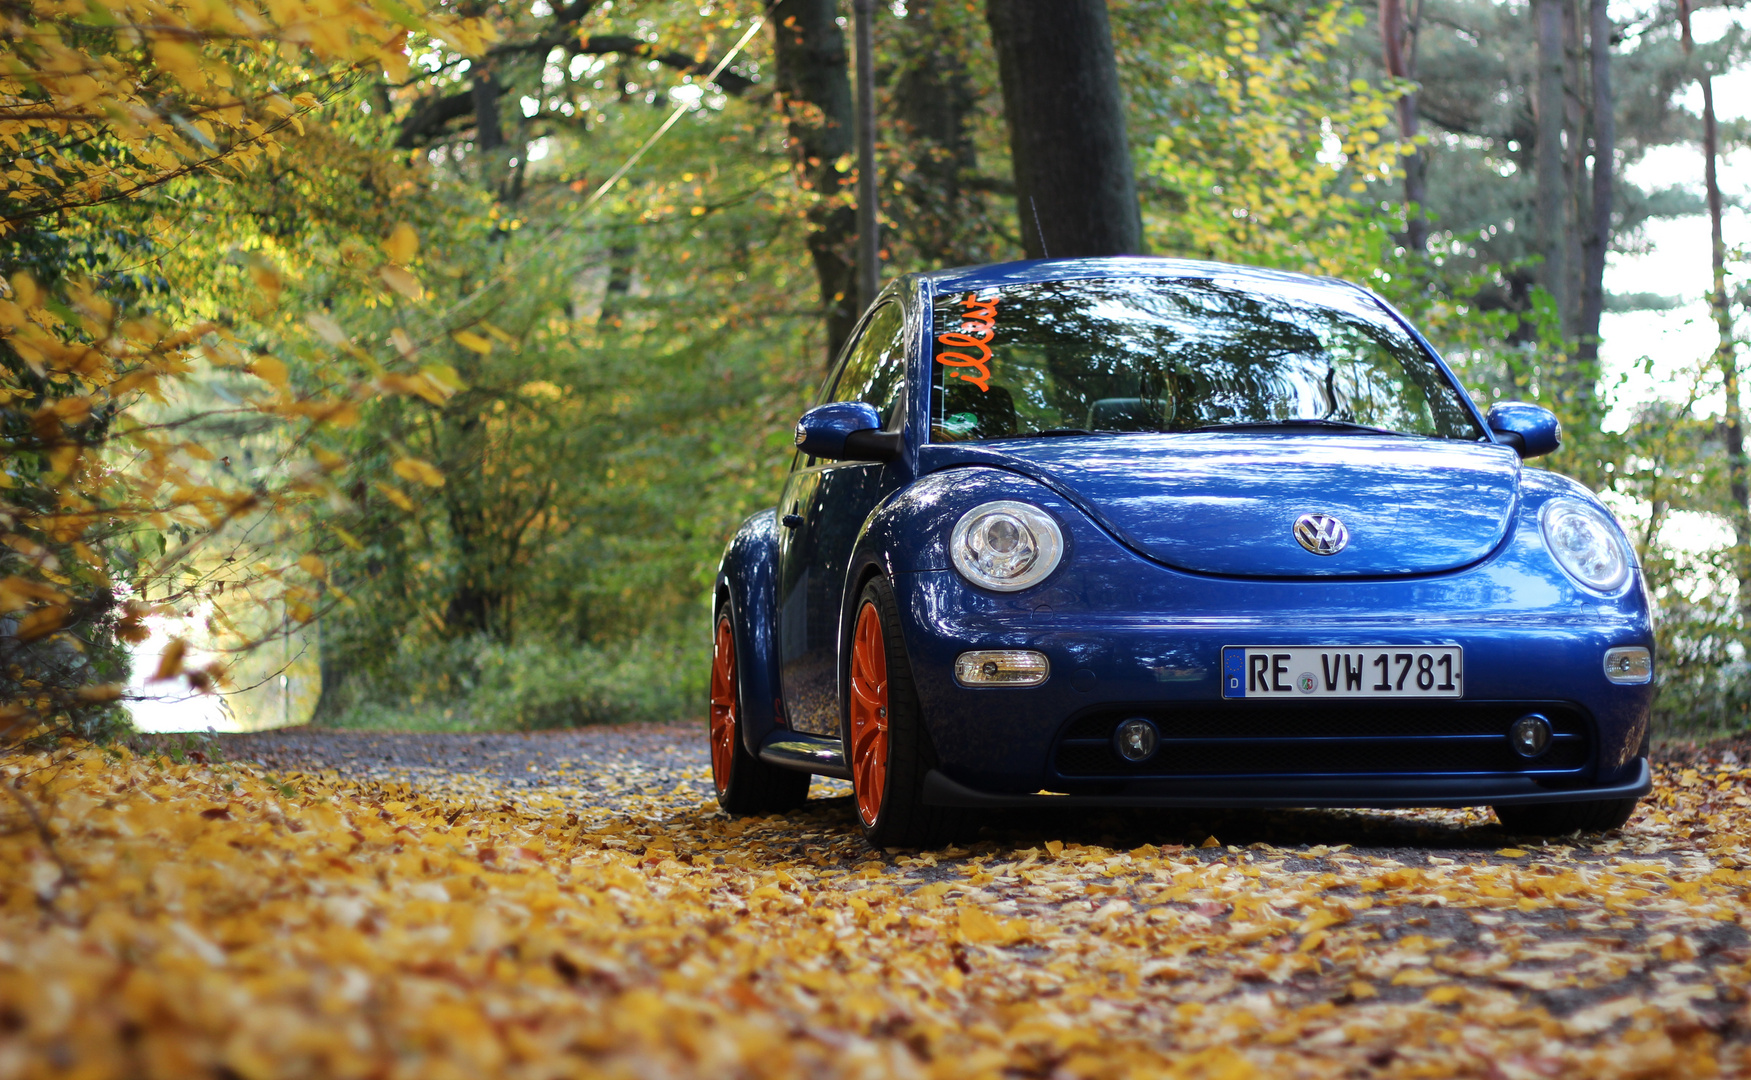 VW Beetle 1.8t Tuning - Blau Orange - Herbst